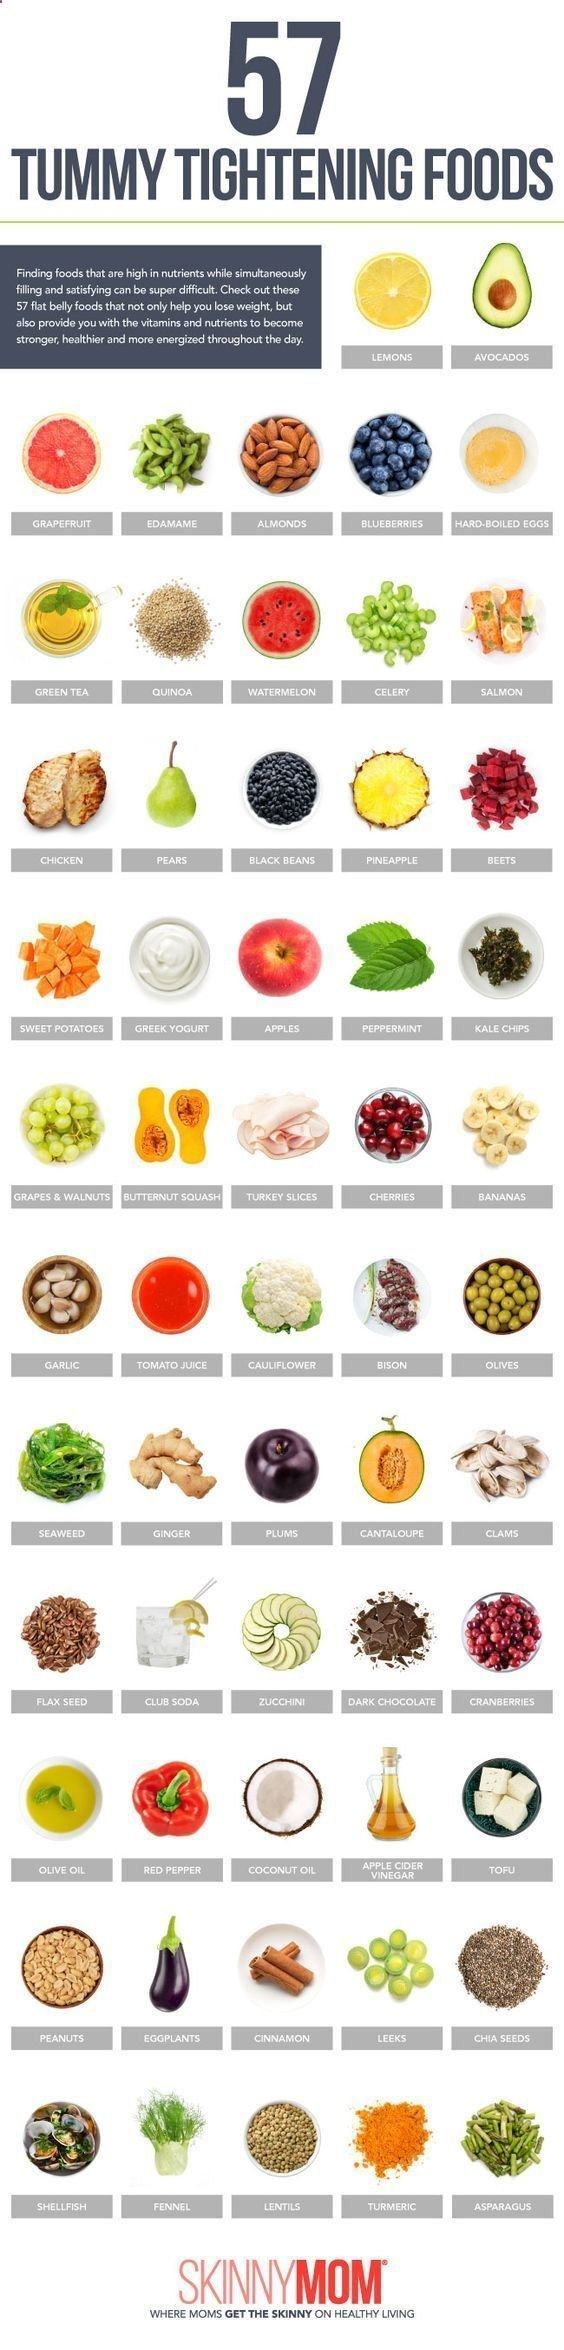 Eat these 57 tummy-tightening foods every day!